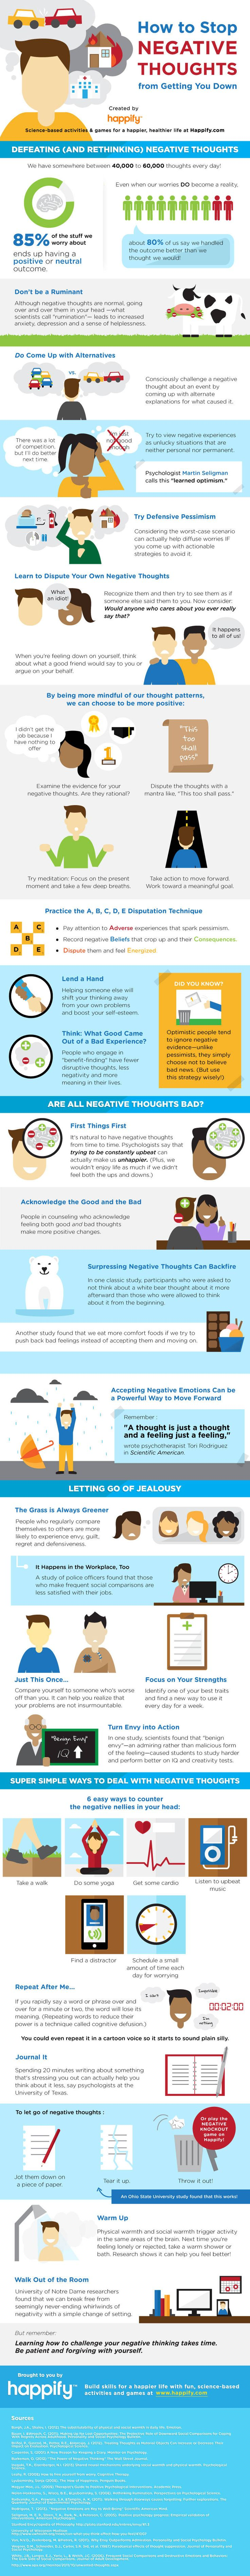 How To Stop Negative Thoughts